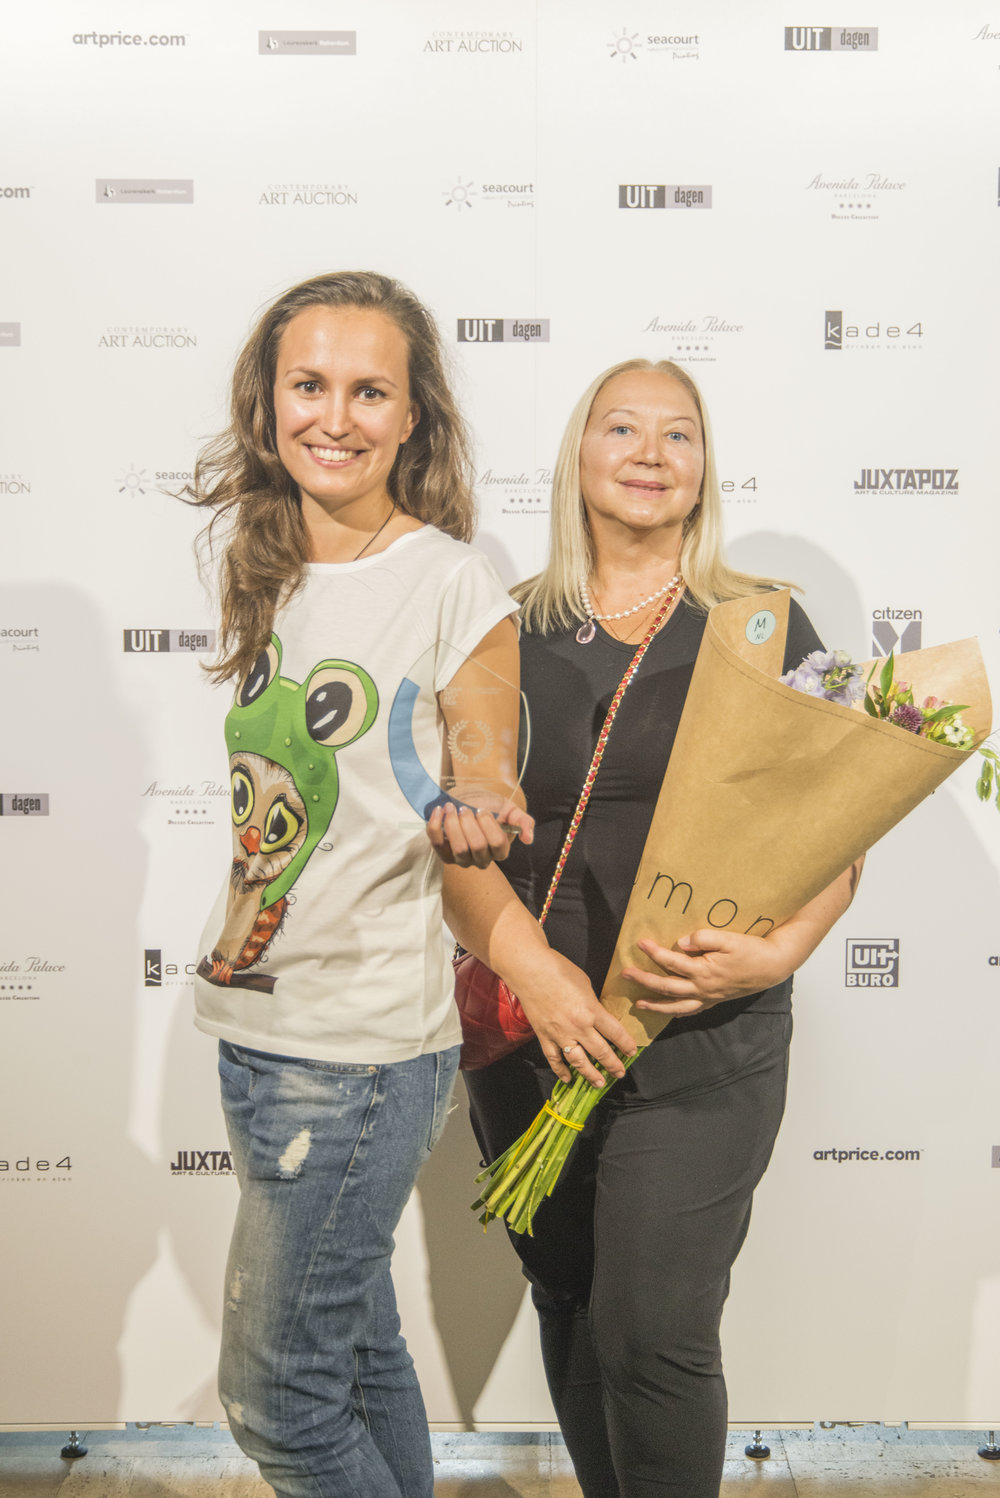 2nd Prize winner Arts Council Latvia